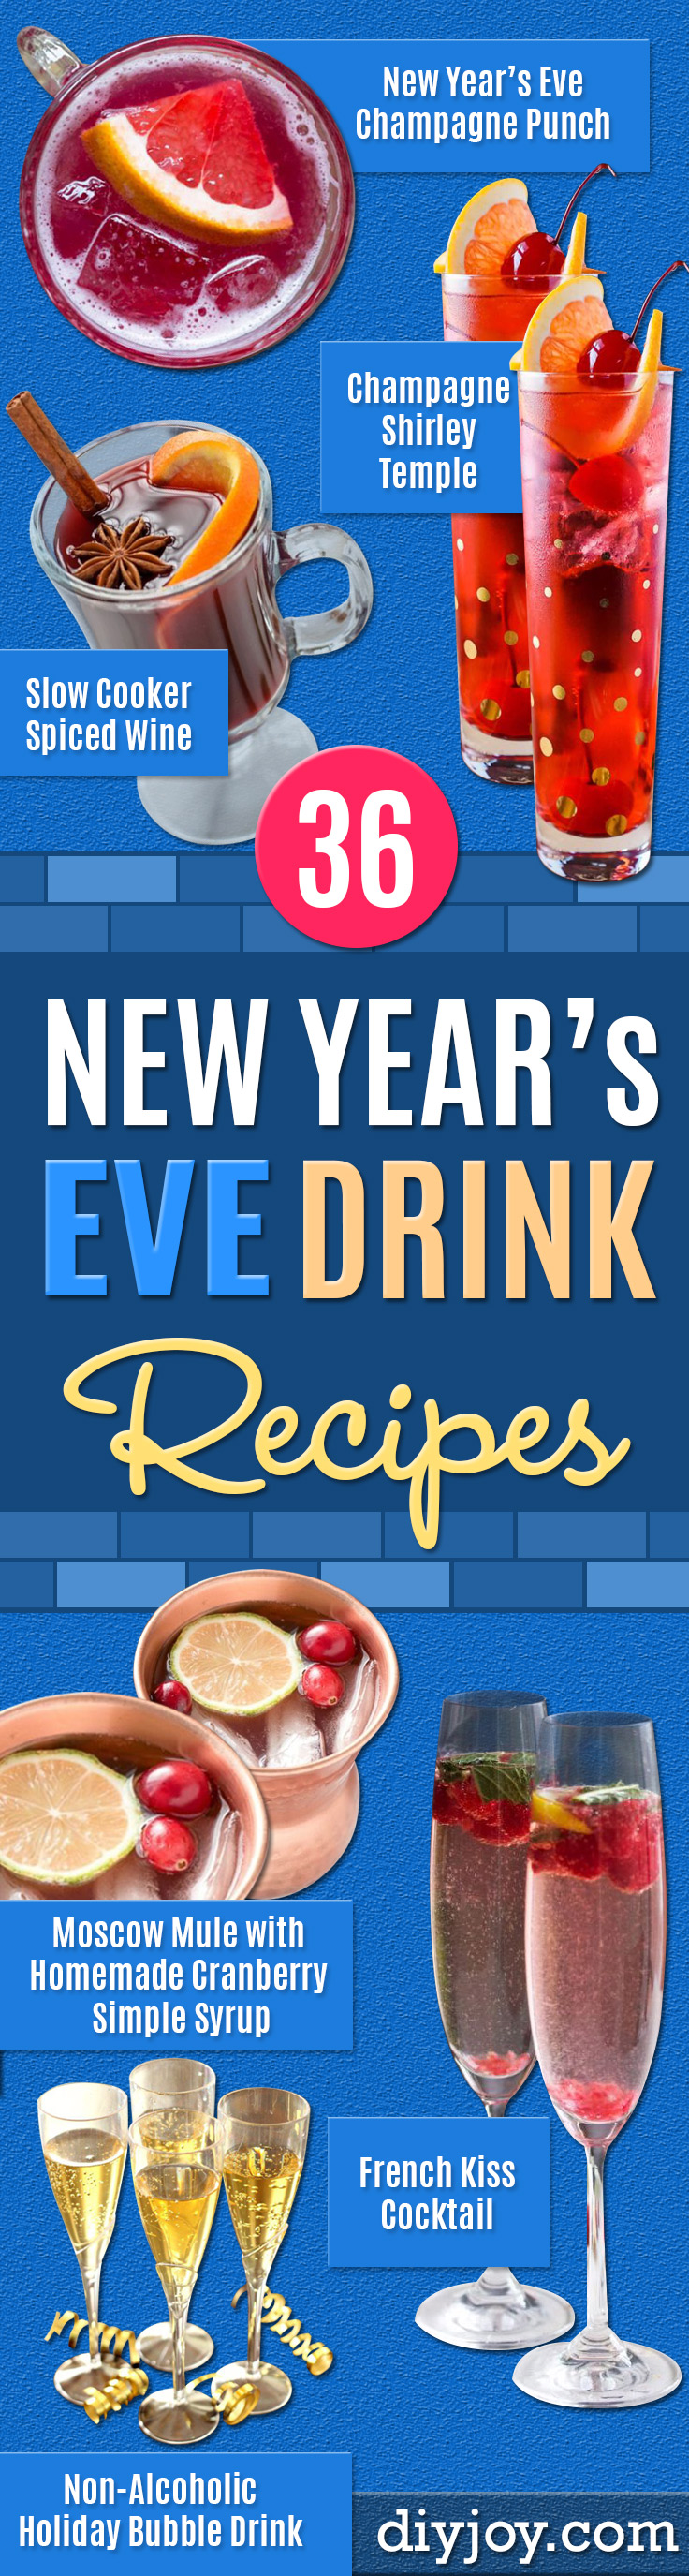 Best Drink Recipes for New Years Eve - Creative Cocktails, Drinks, Champagne Toasts, and Punch Mixes for A New Year's Eve Party - Ideas for Serving, Glasses, Fun Ideas for Shots and Cocktails - Easy Vodka Recipes, Non Alcoholic, Whisky Rum and Party Punches http://diyjoy.com/new-years-eve-drink-recipes